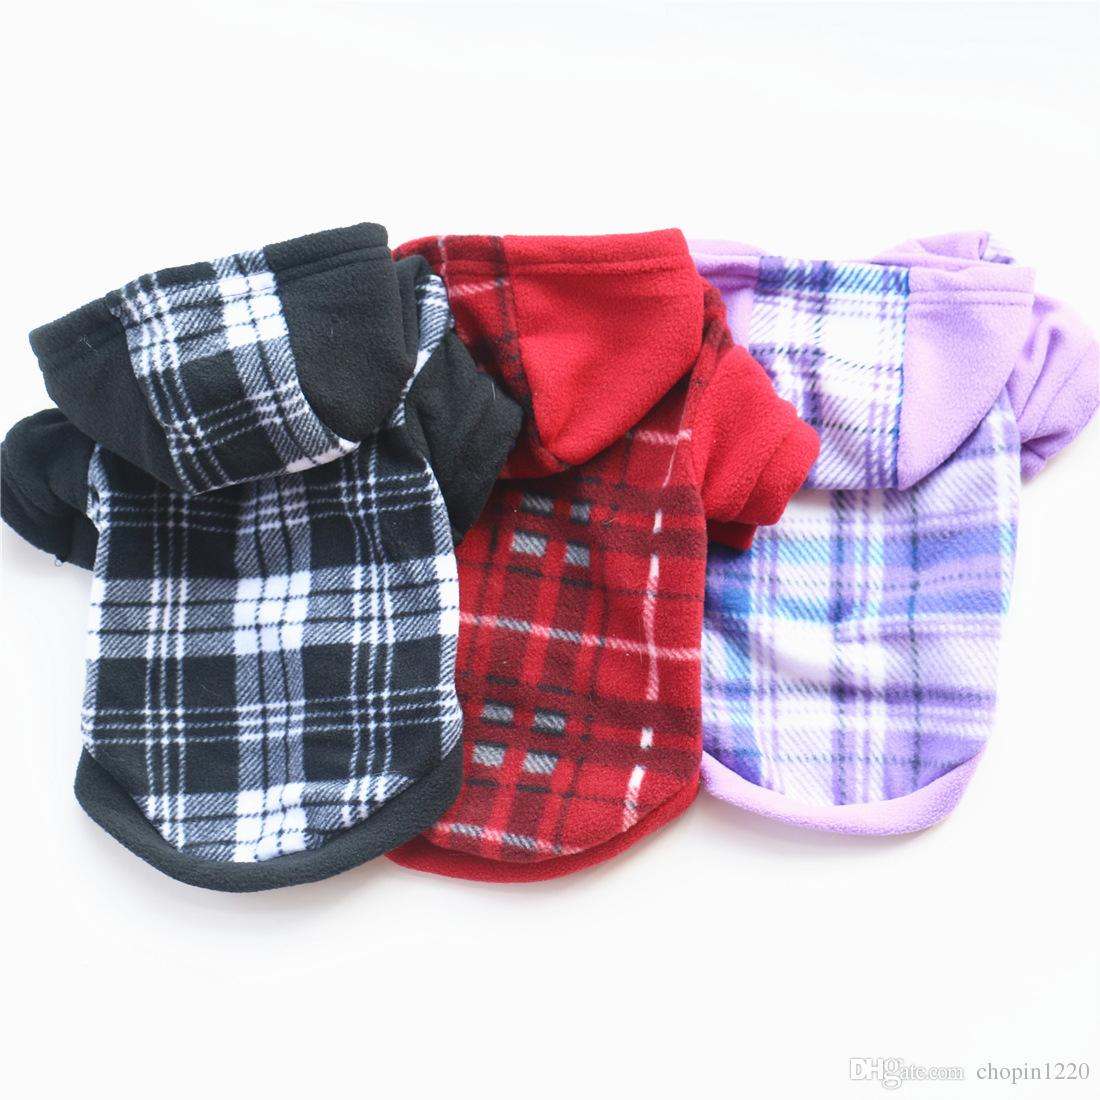 3 Colors Winter Spring Pet Clothes Product Supply Plaid Dog Coat for Small Dogs Chihuahua Fleece Attire Puppy Dogs Suit Pet Supplies XS-XL